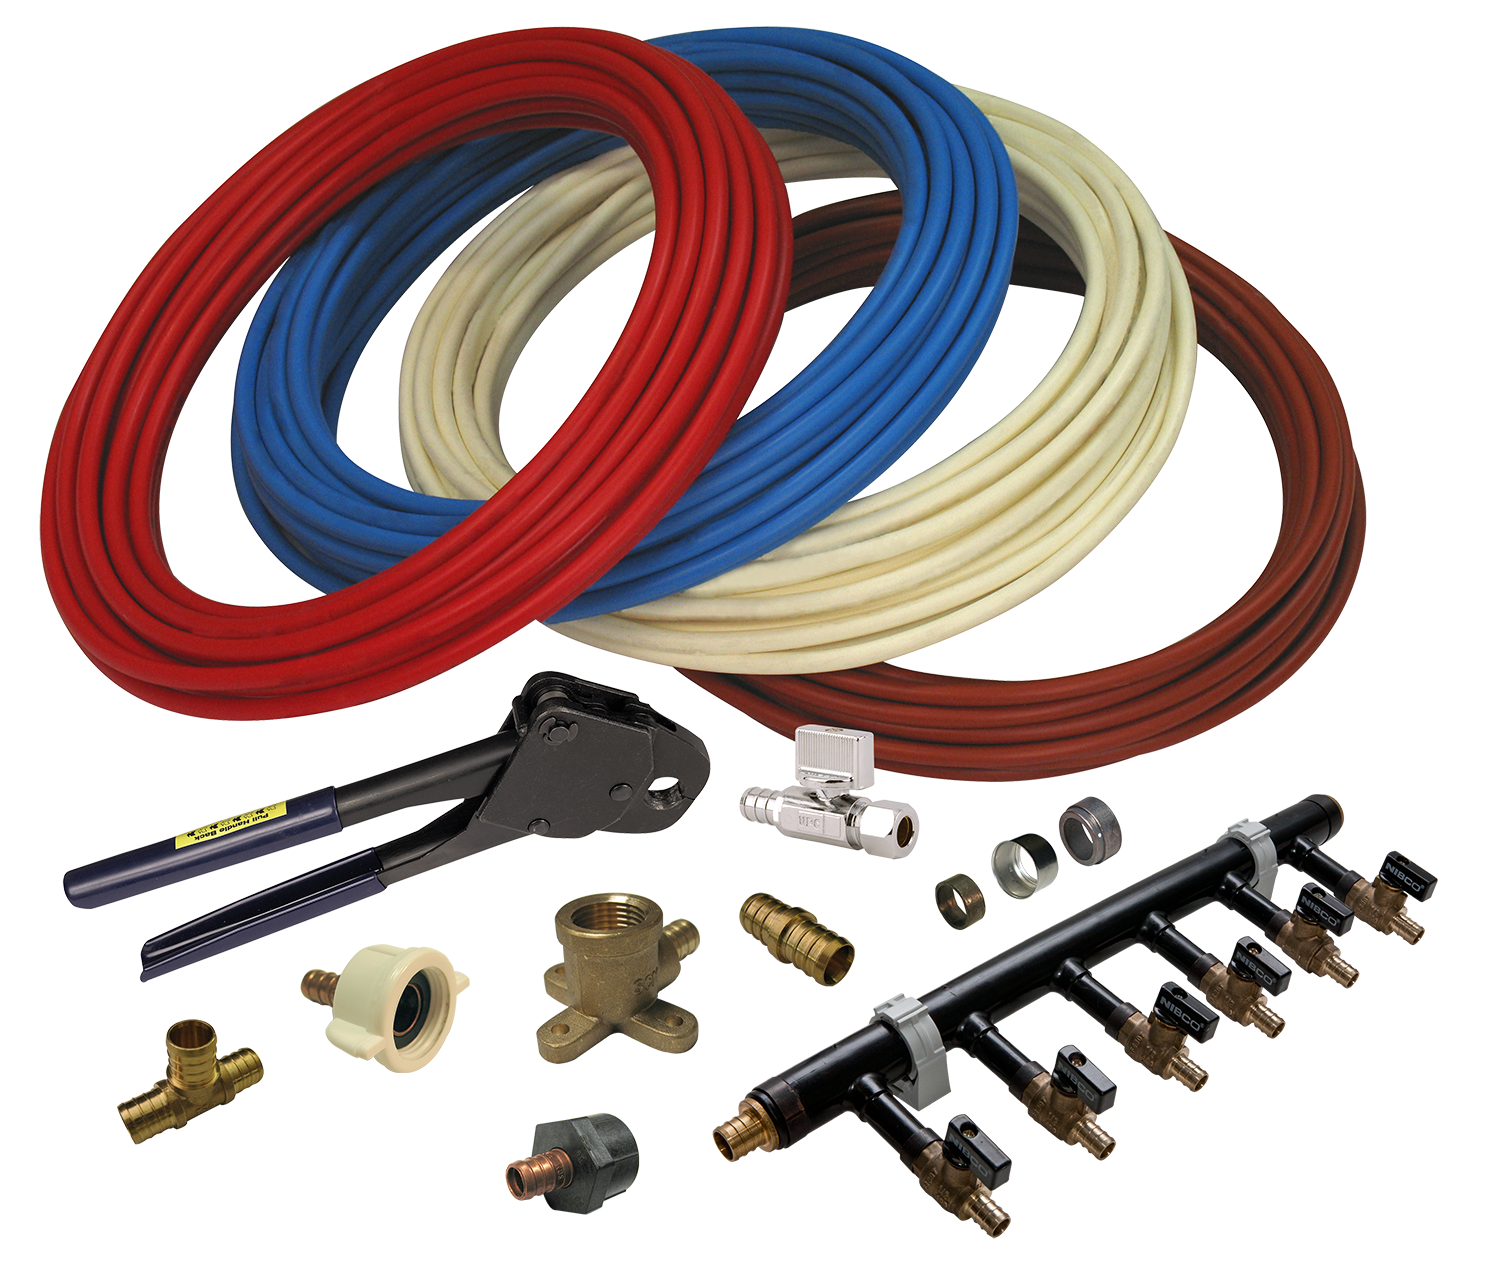 PEX Plumbing: Frequently Asked Questions